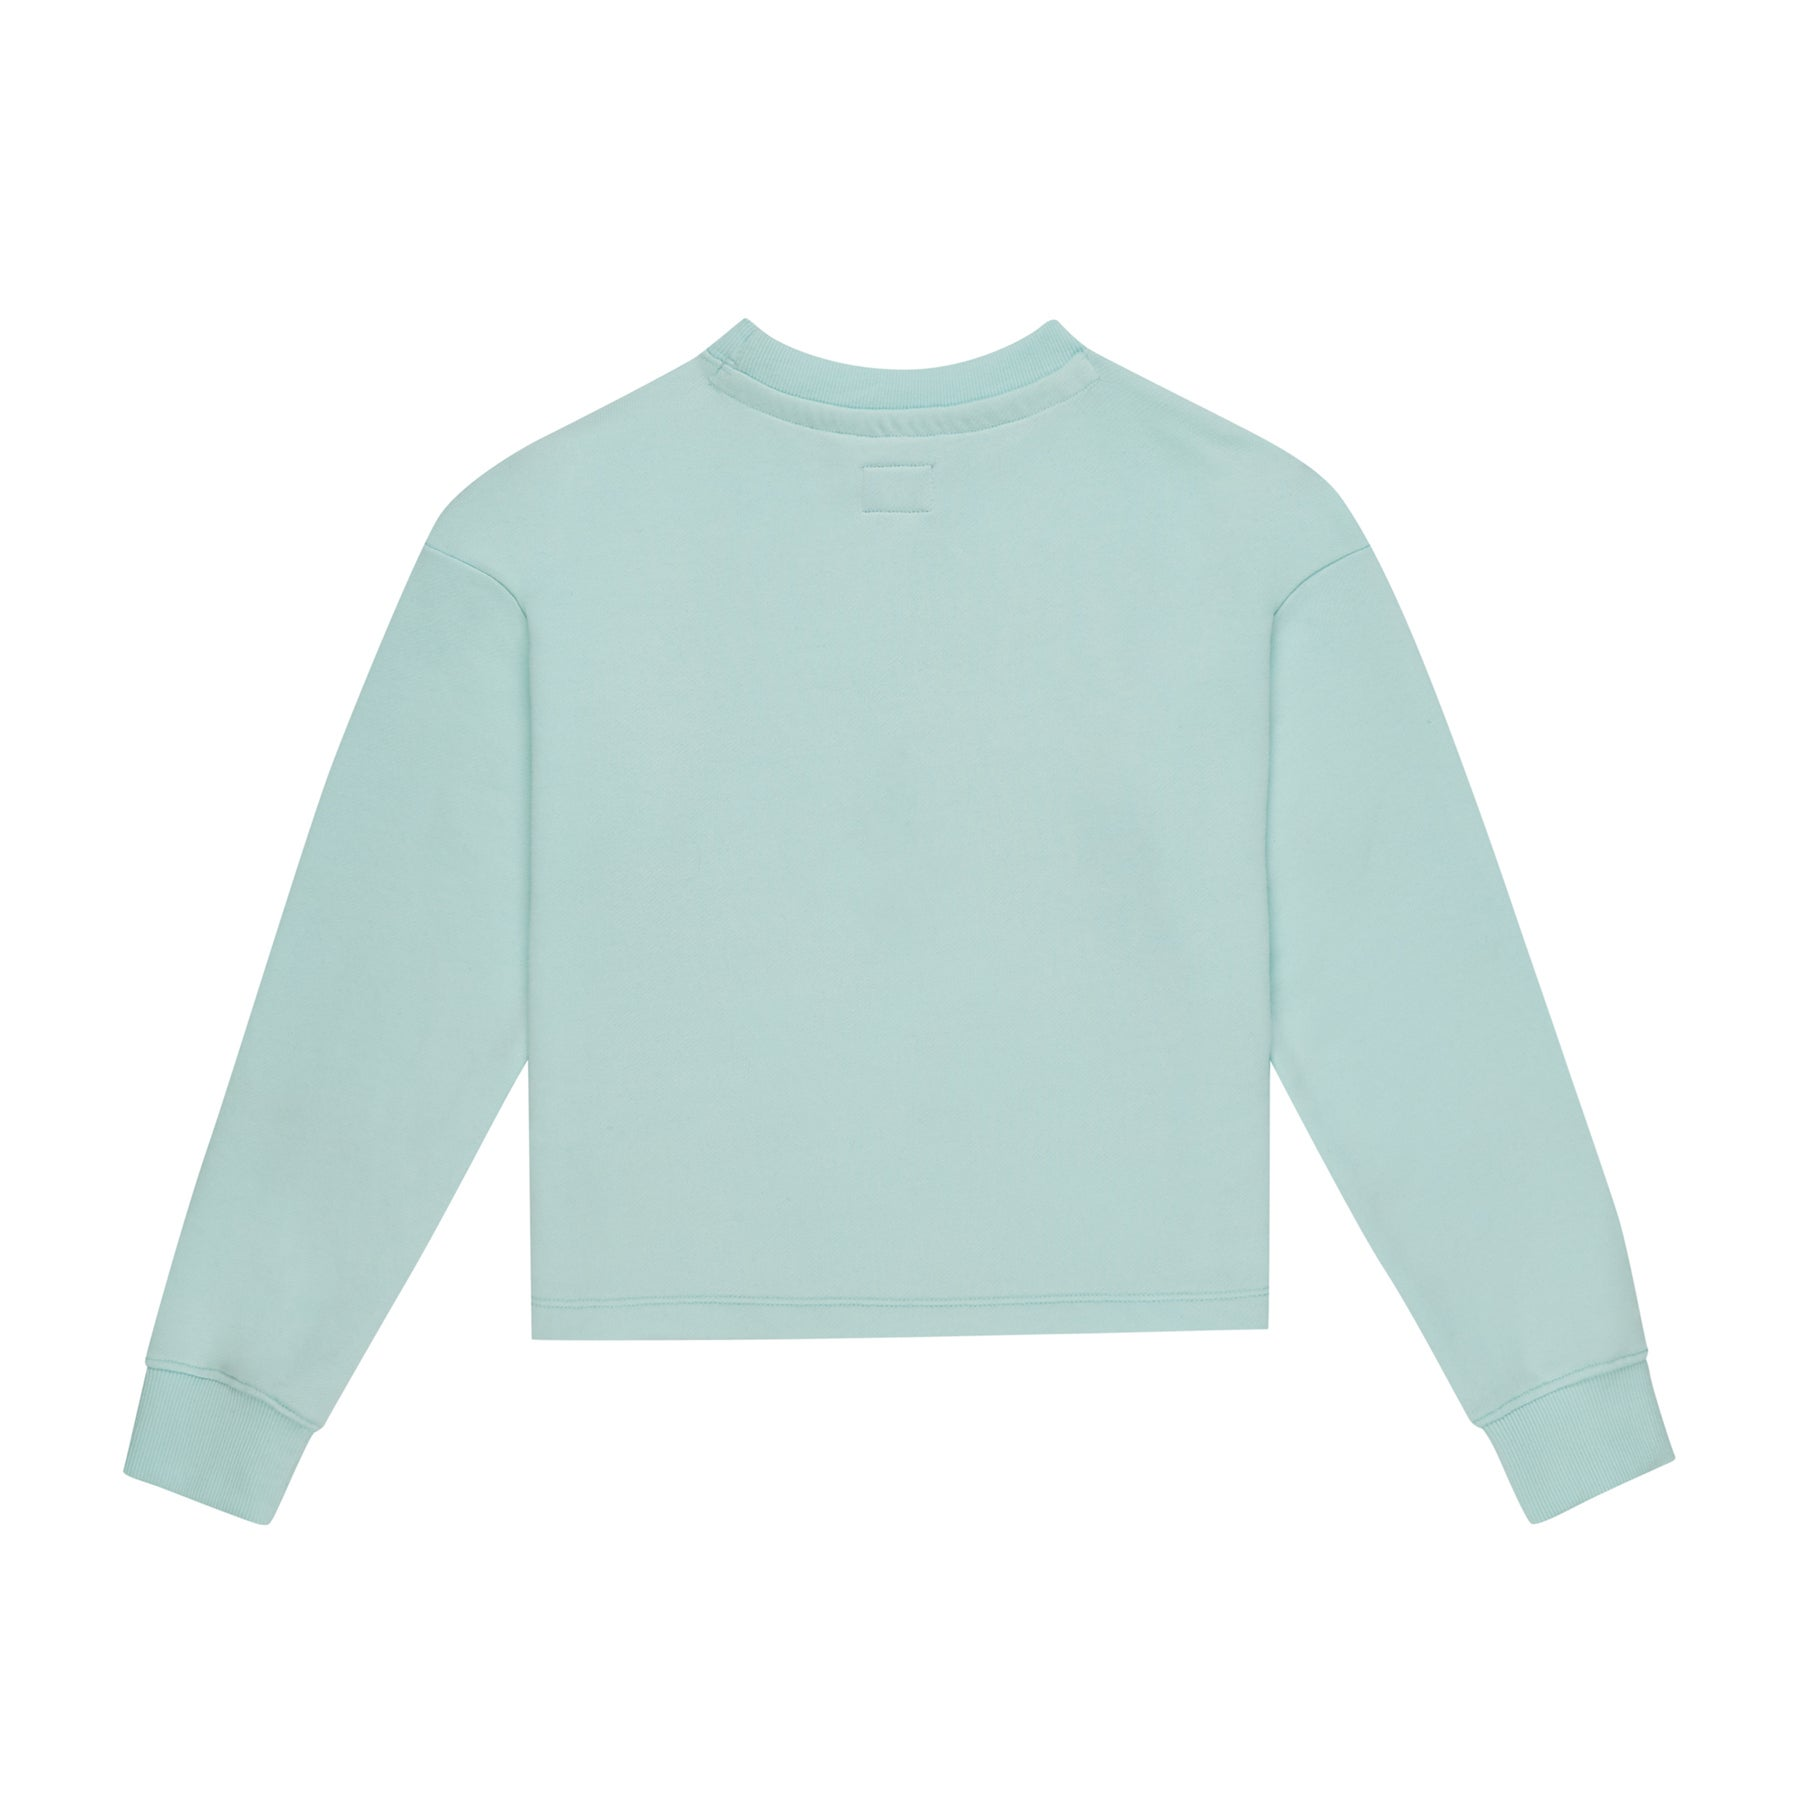 Water Tailles Pull Neill Sweater O Tropical Toutes w8YIRqTx